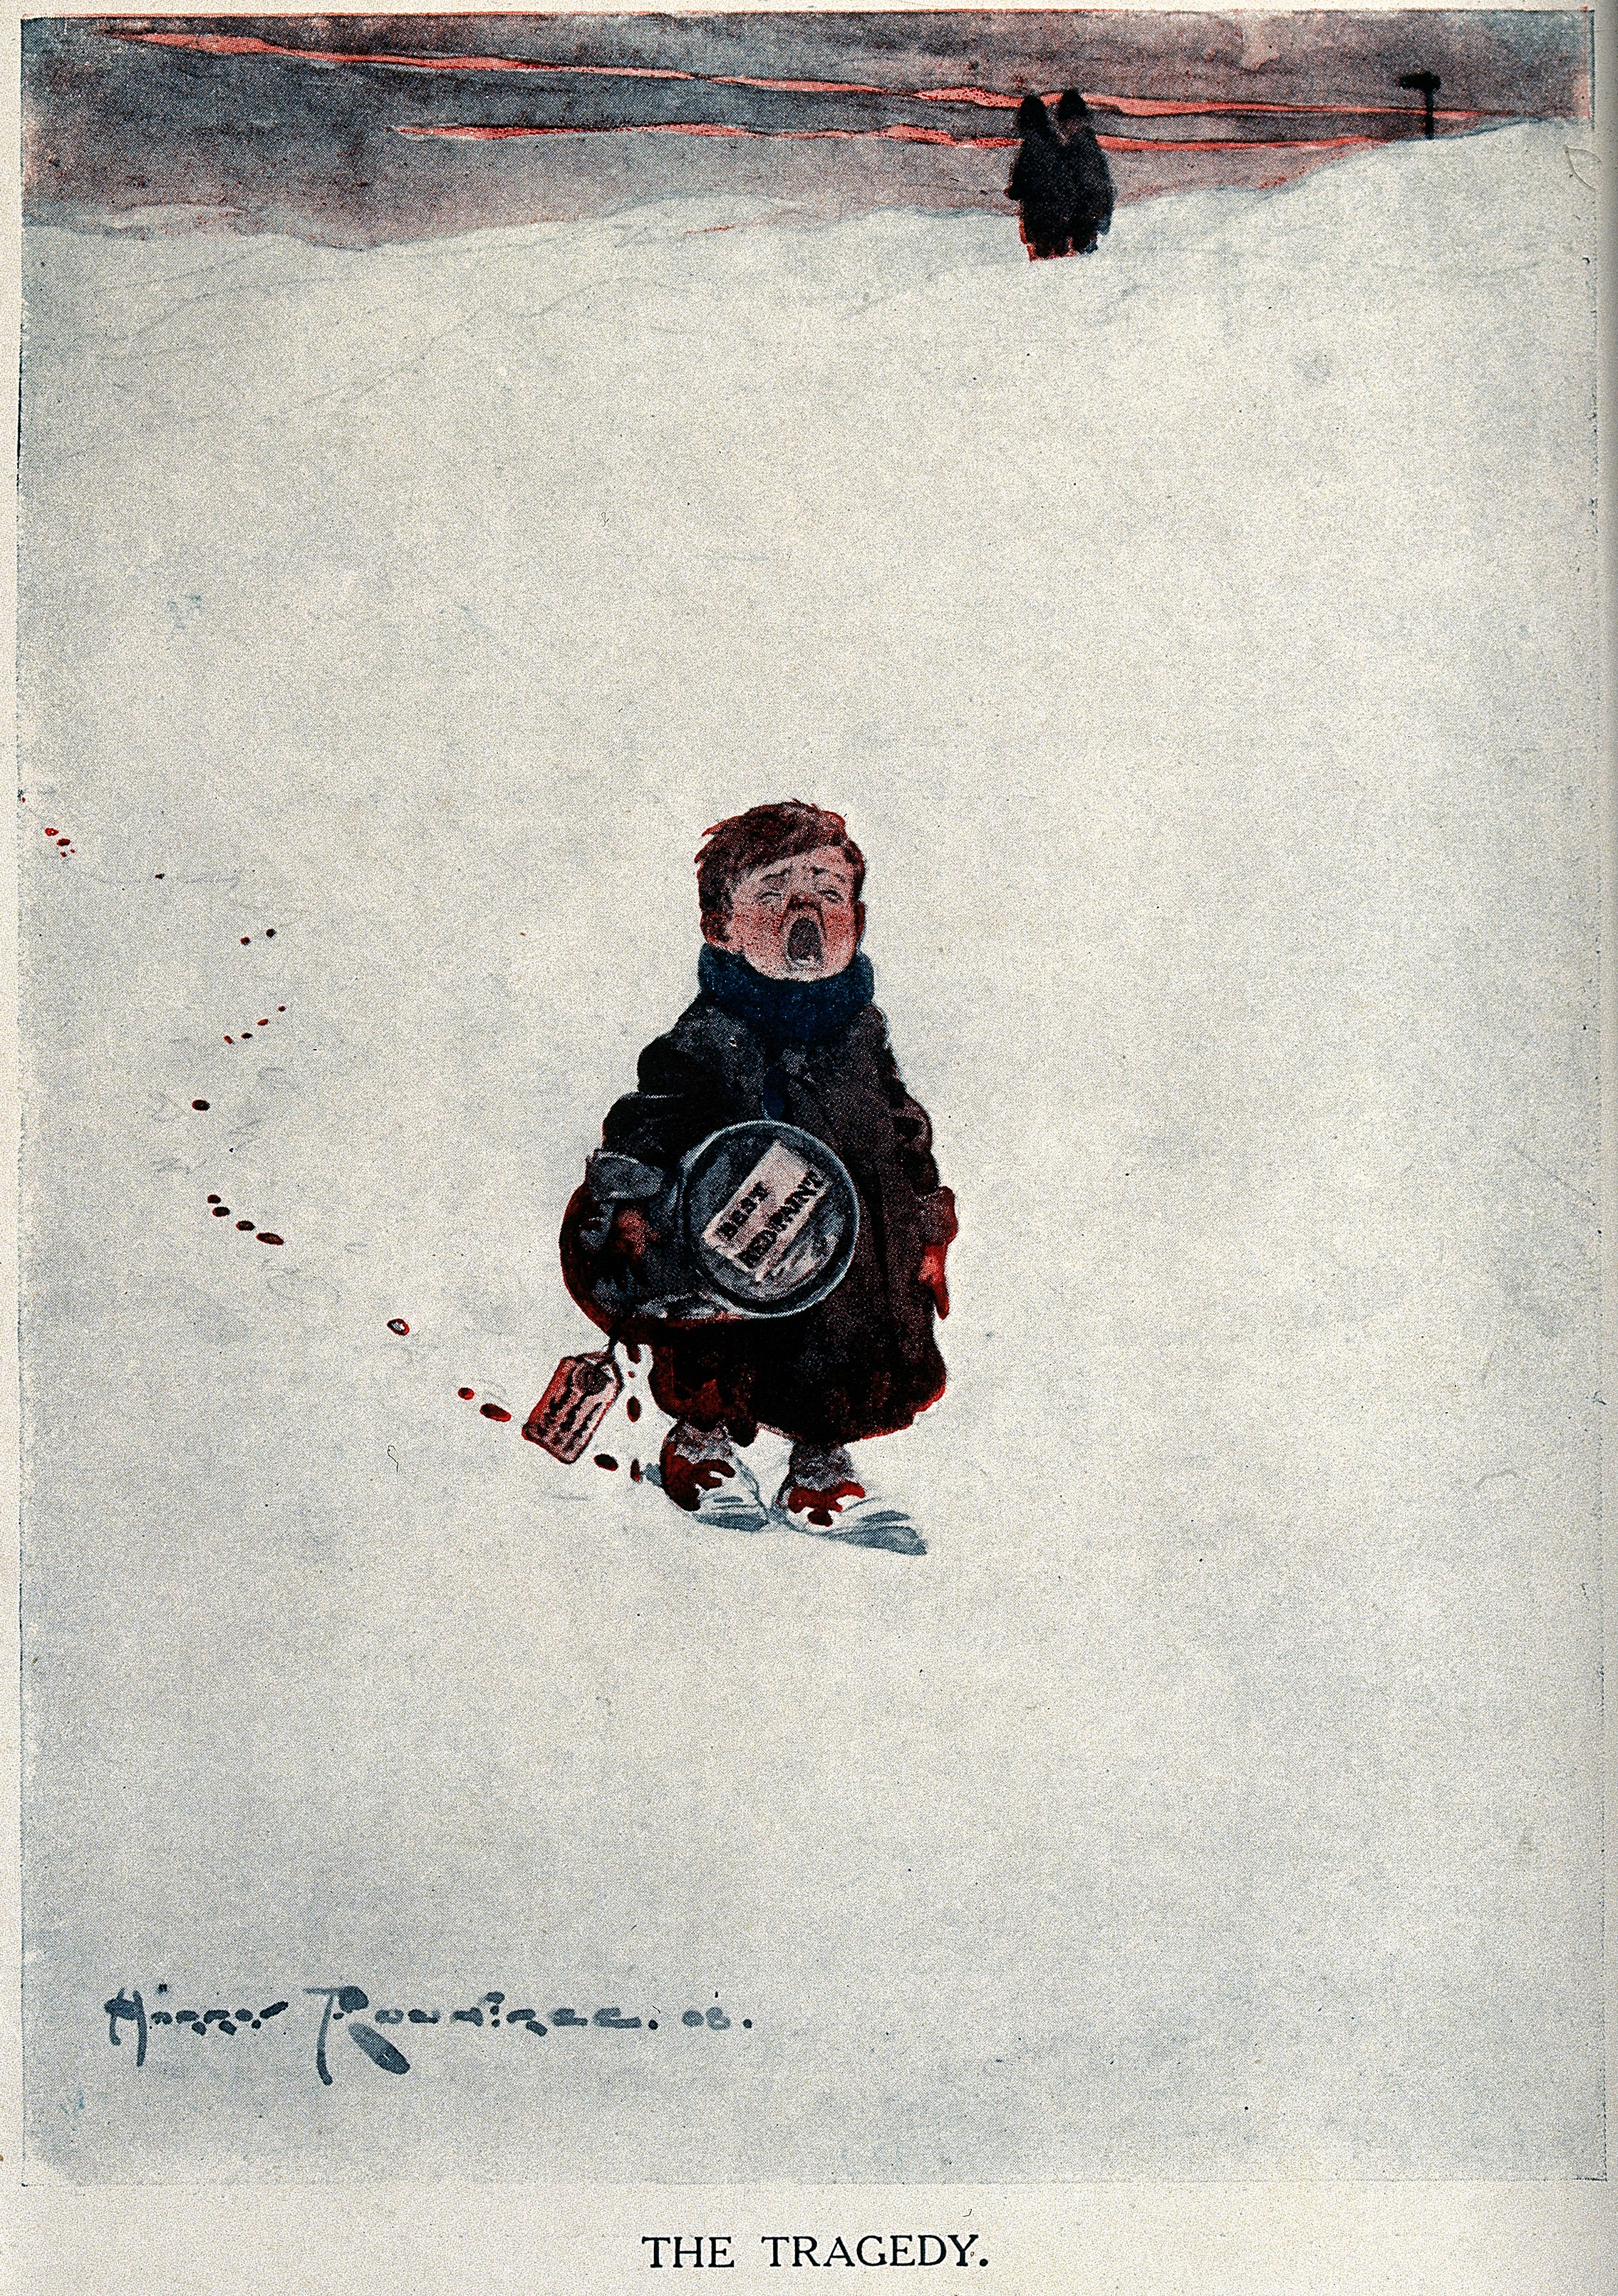 A young boy walks across the snow crying and leaving a trail